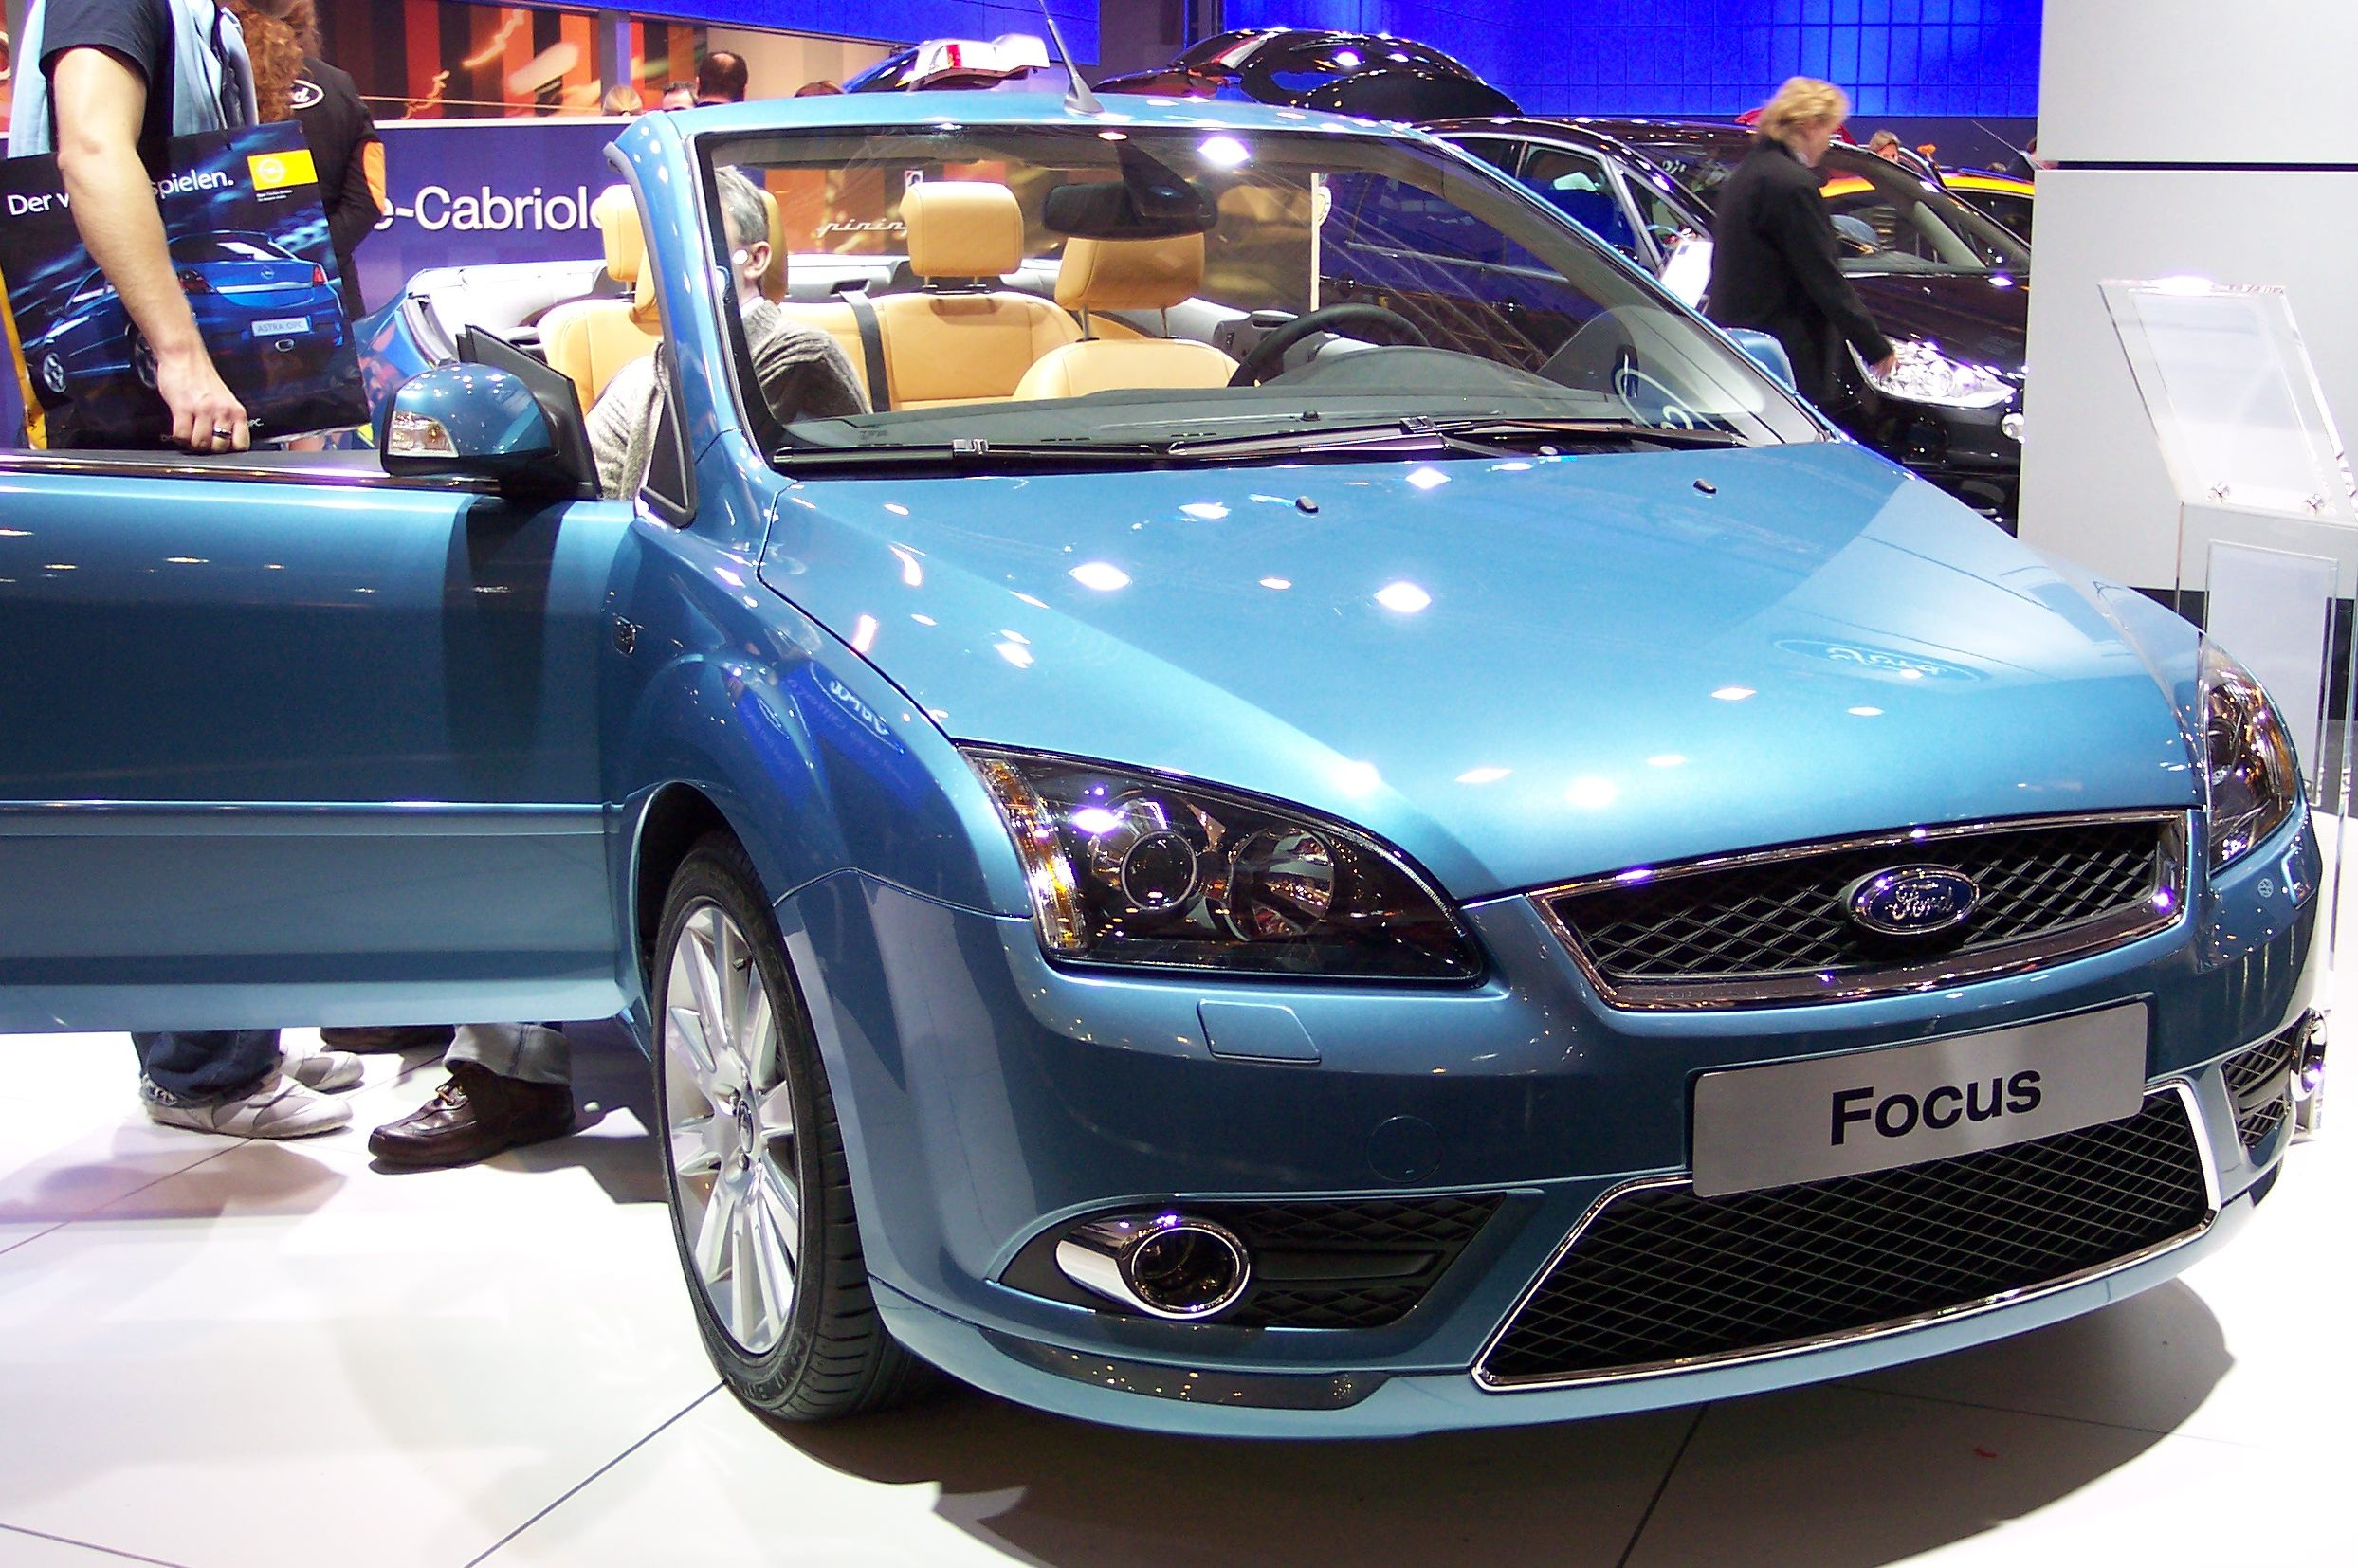 file ford focus cabrio blue vr wikimedia commons. Black Bedroom Furniture Sets. Home Design Ideas